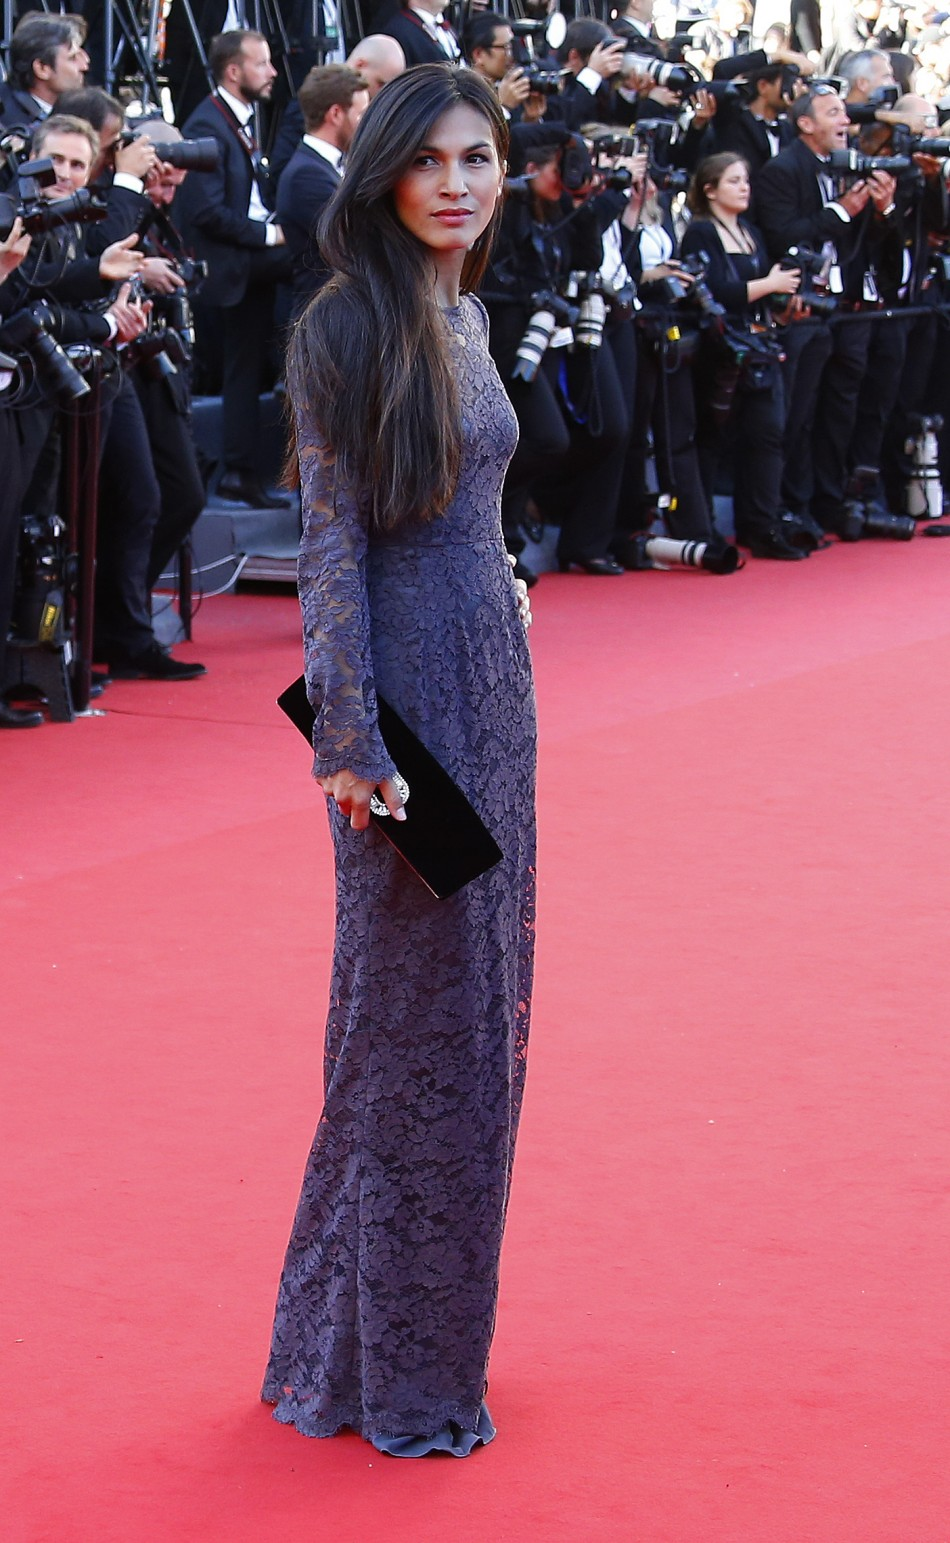 Actress Elodie Yung poses on the red carpet as she arrives for the screening of the film 'Le Passe' (The Past) in competition during the 66th Cannes Film Festival in Cannes May 17, 2013.